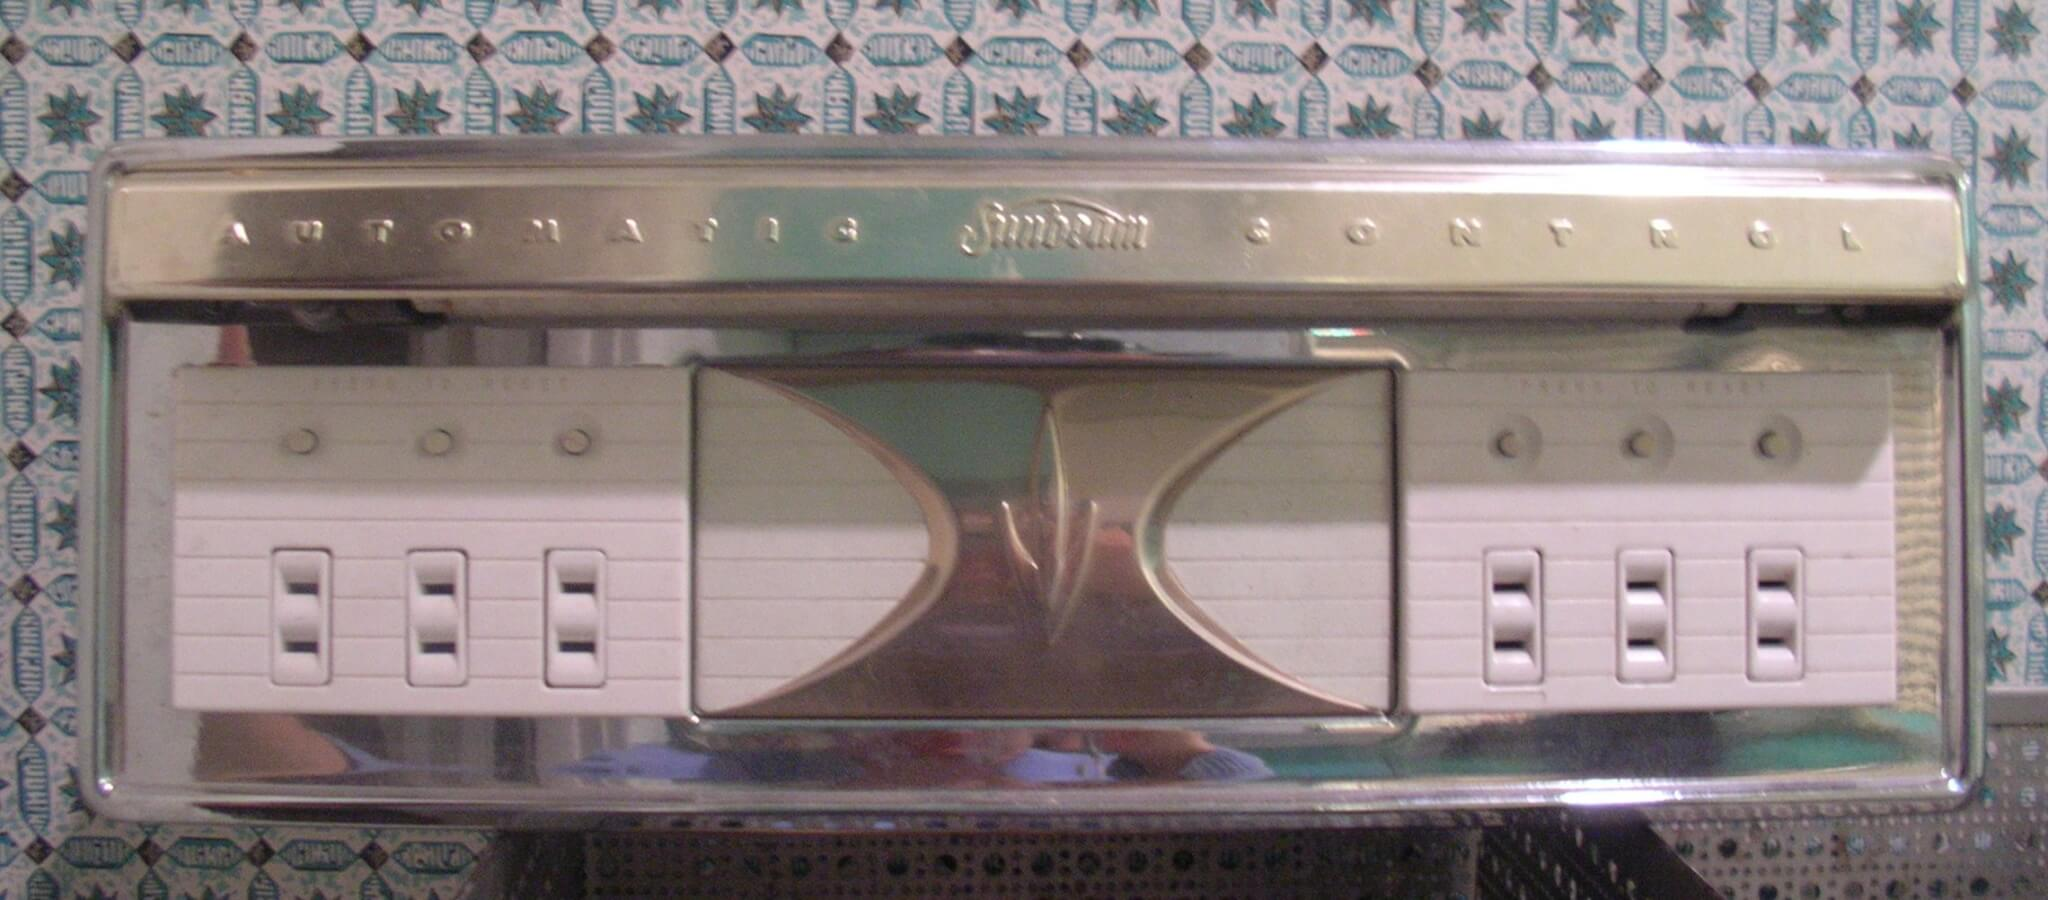 mint-in-box Sunbeam appliance center